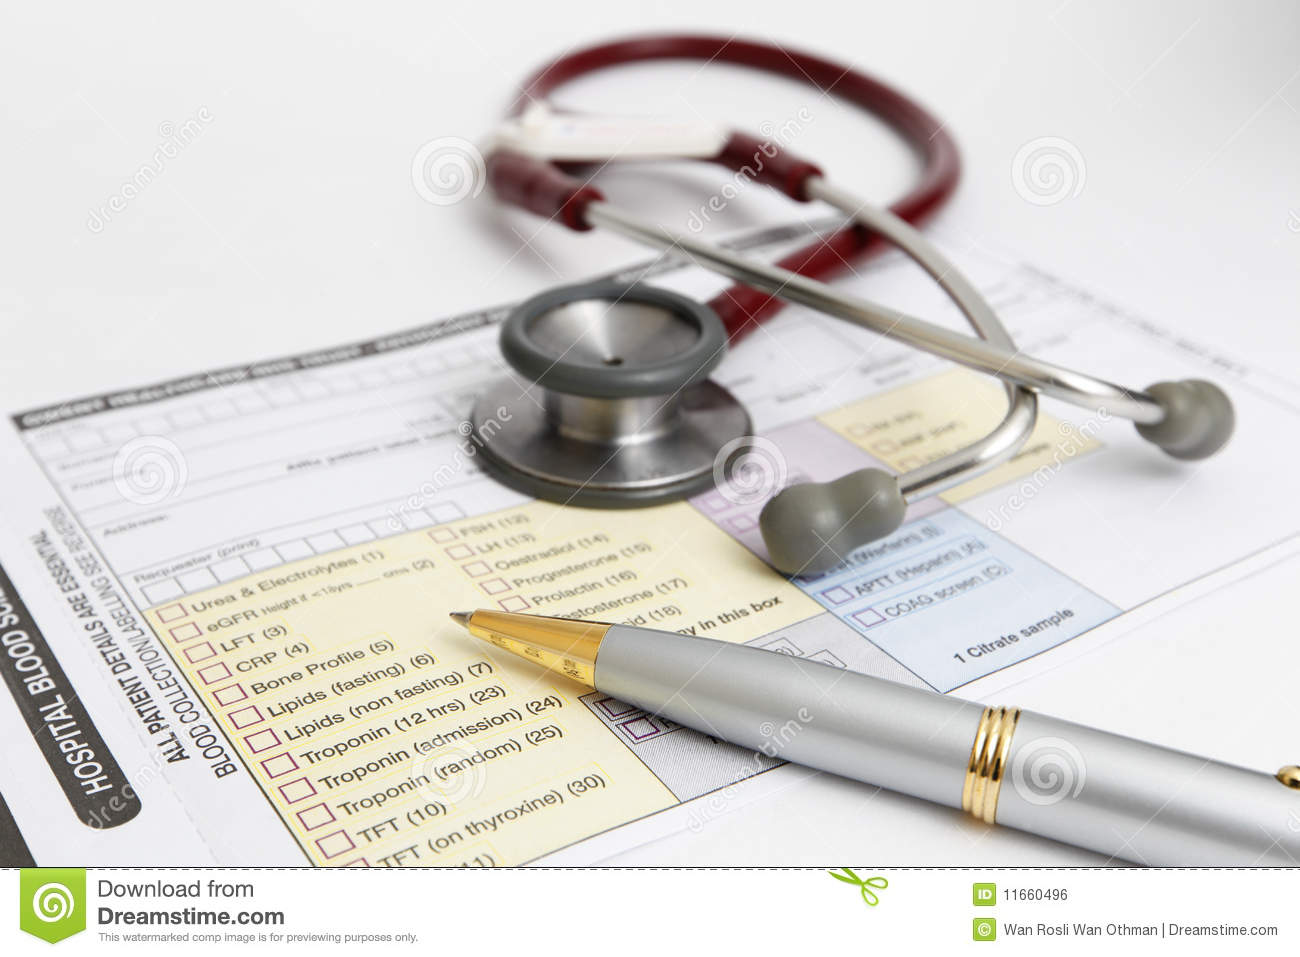 Medical Form Stethoscope Royalty Free Image Image 11660496 – Medical Form